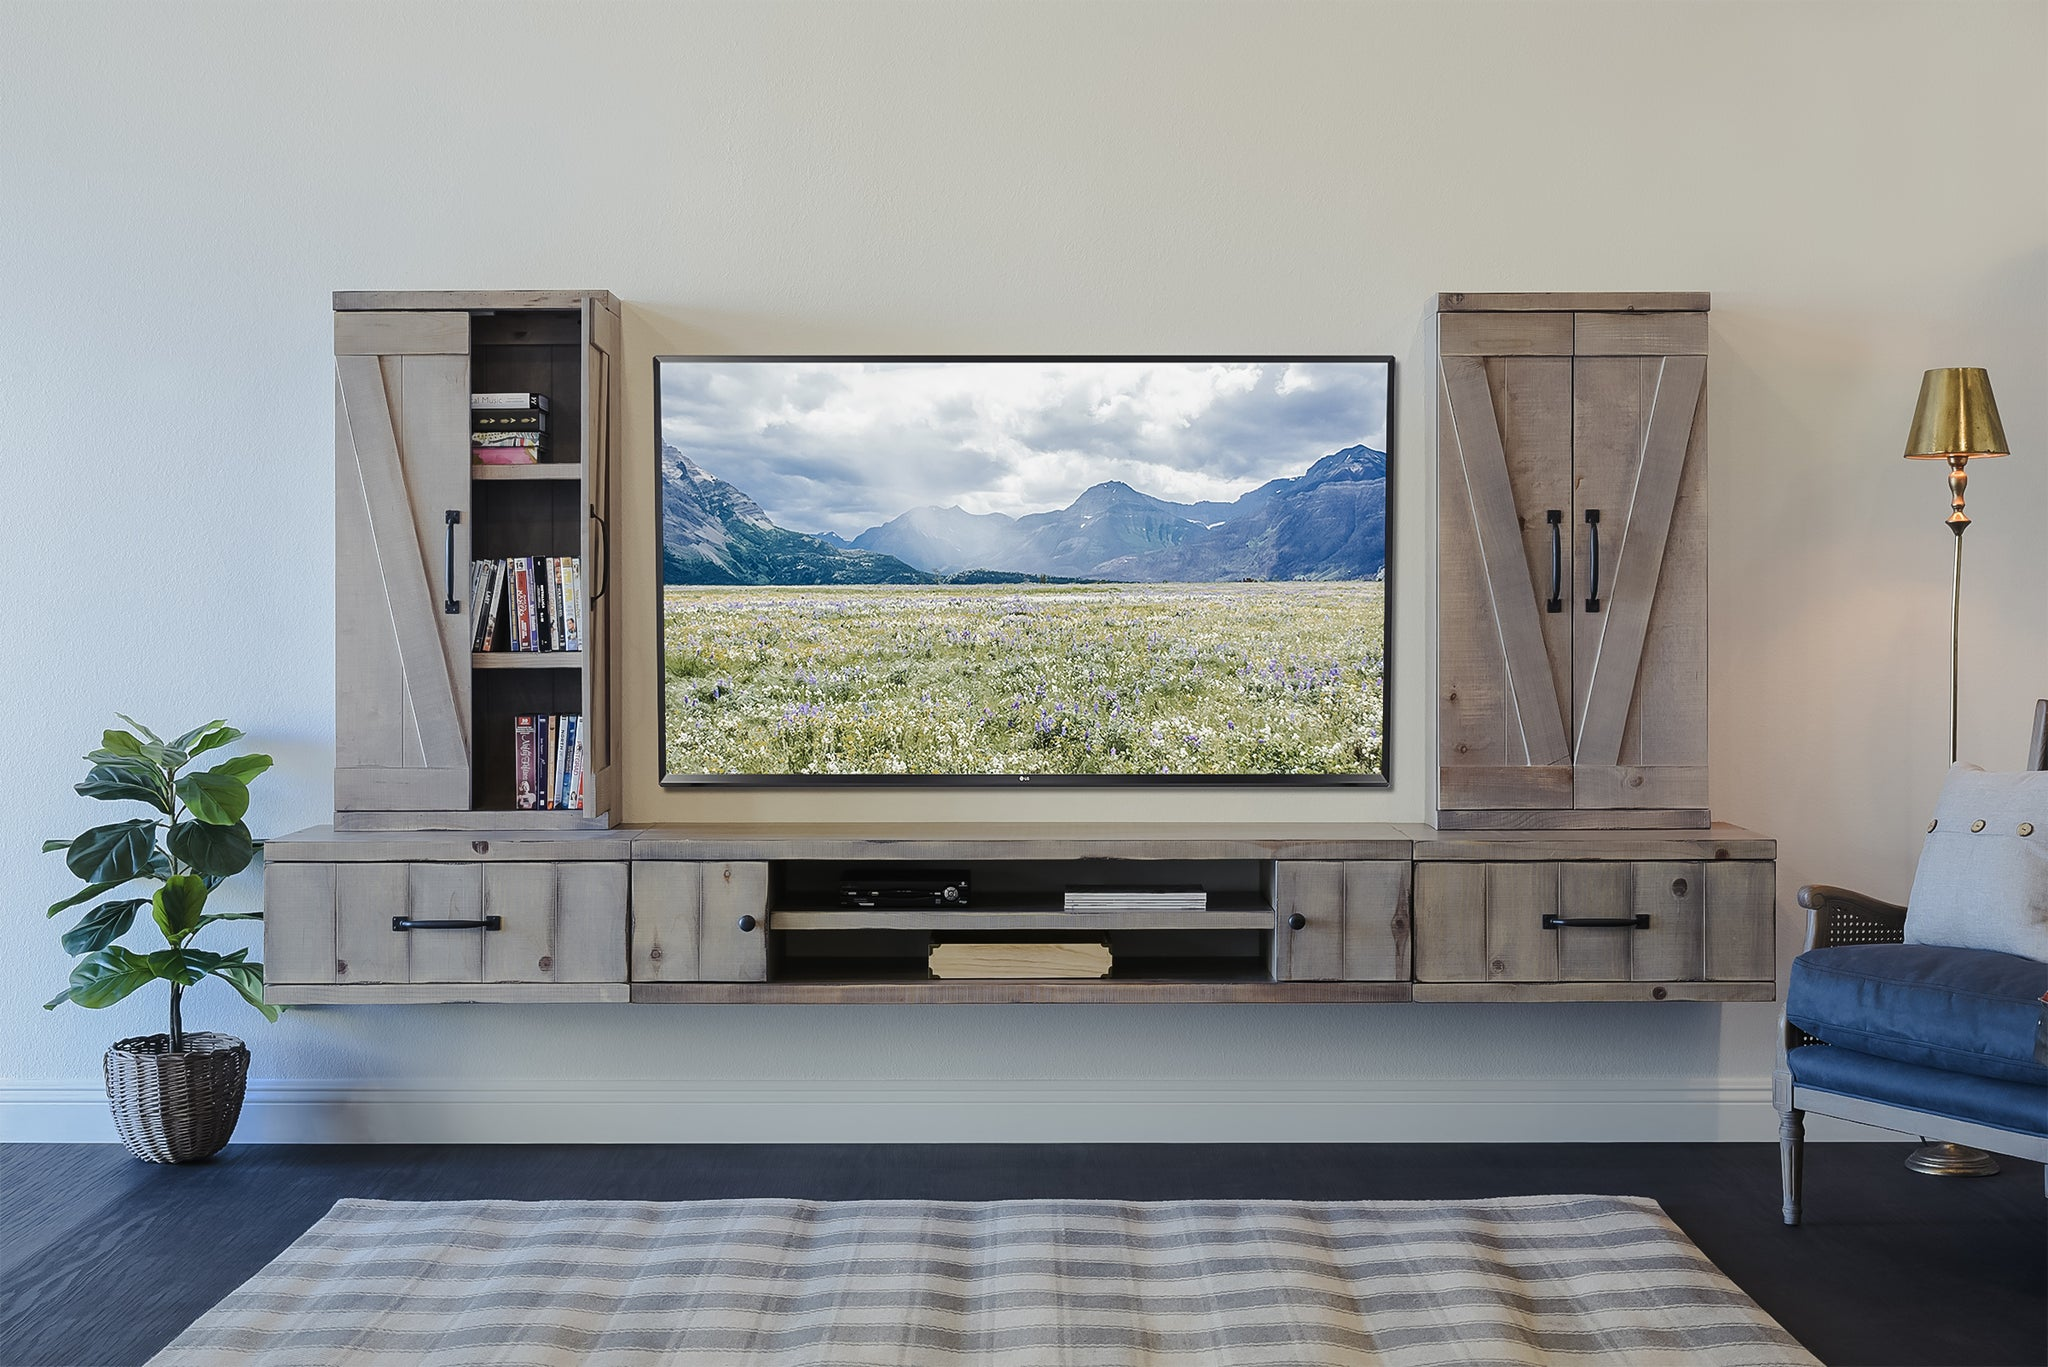 Gray Barn Door Floating TV Stand Wall Mount Entertainment Center - Farmhouse - Lakewood